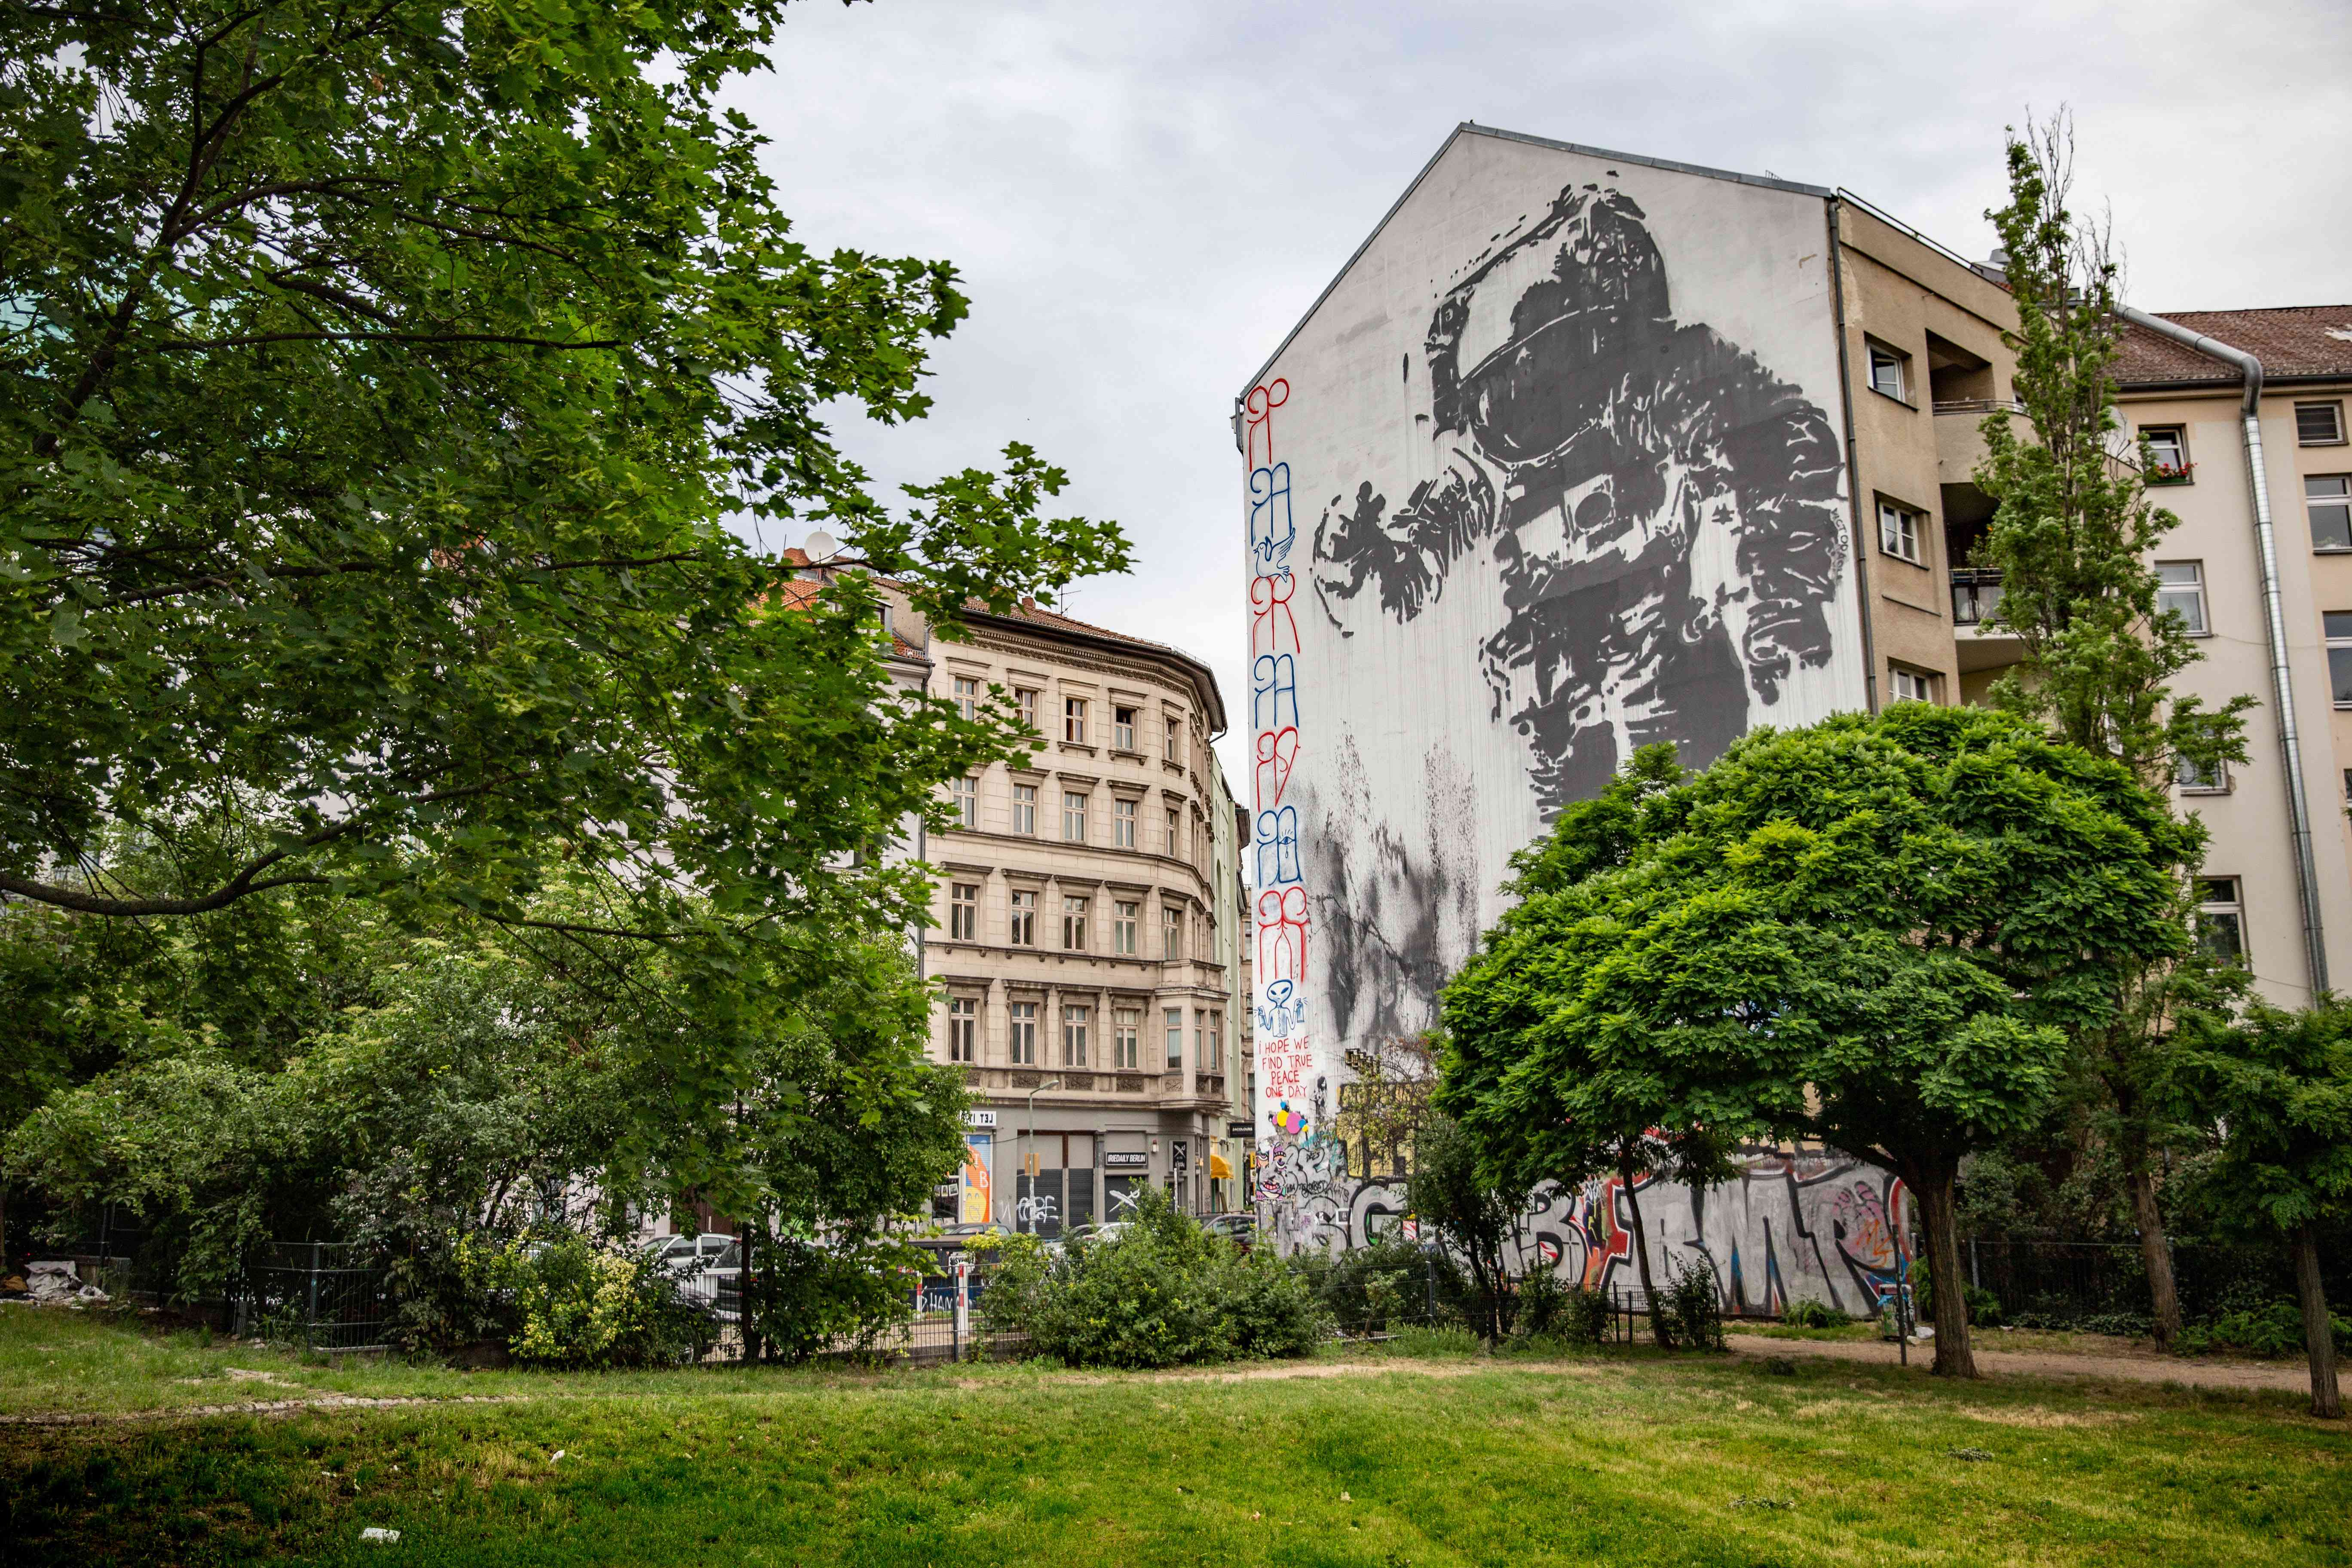 The 10 Best Works of Street Art in Berlin